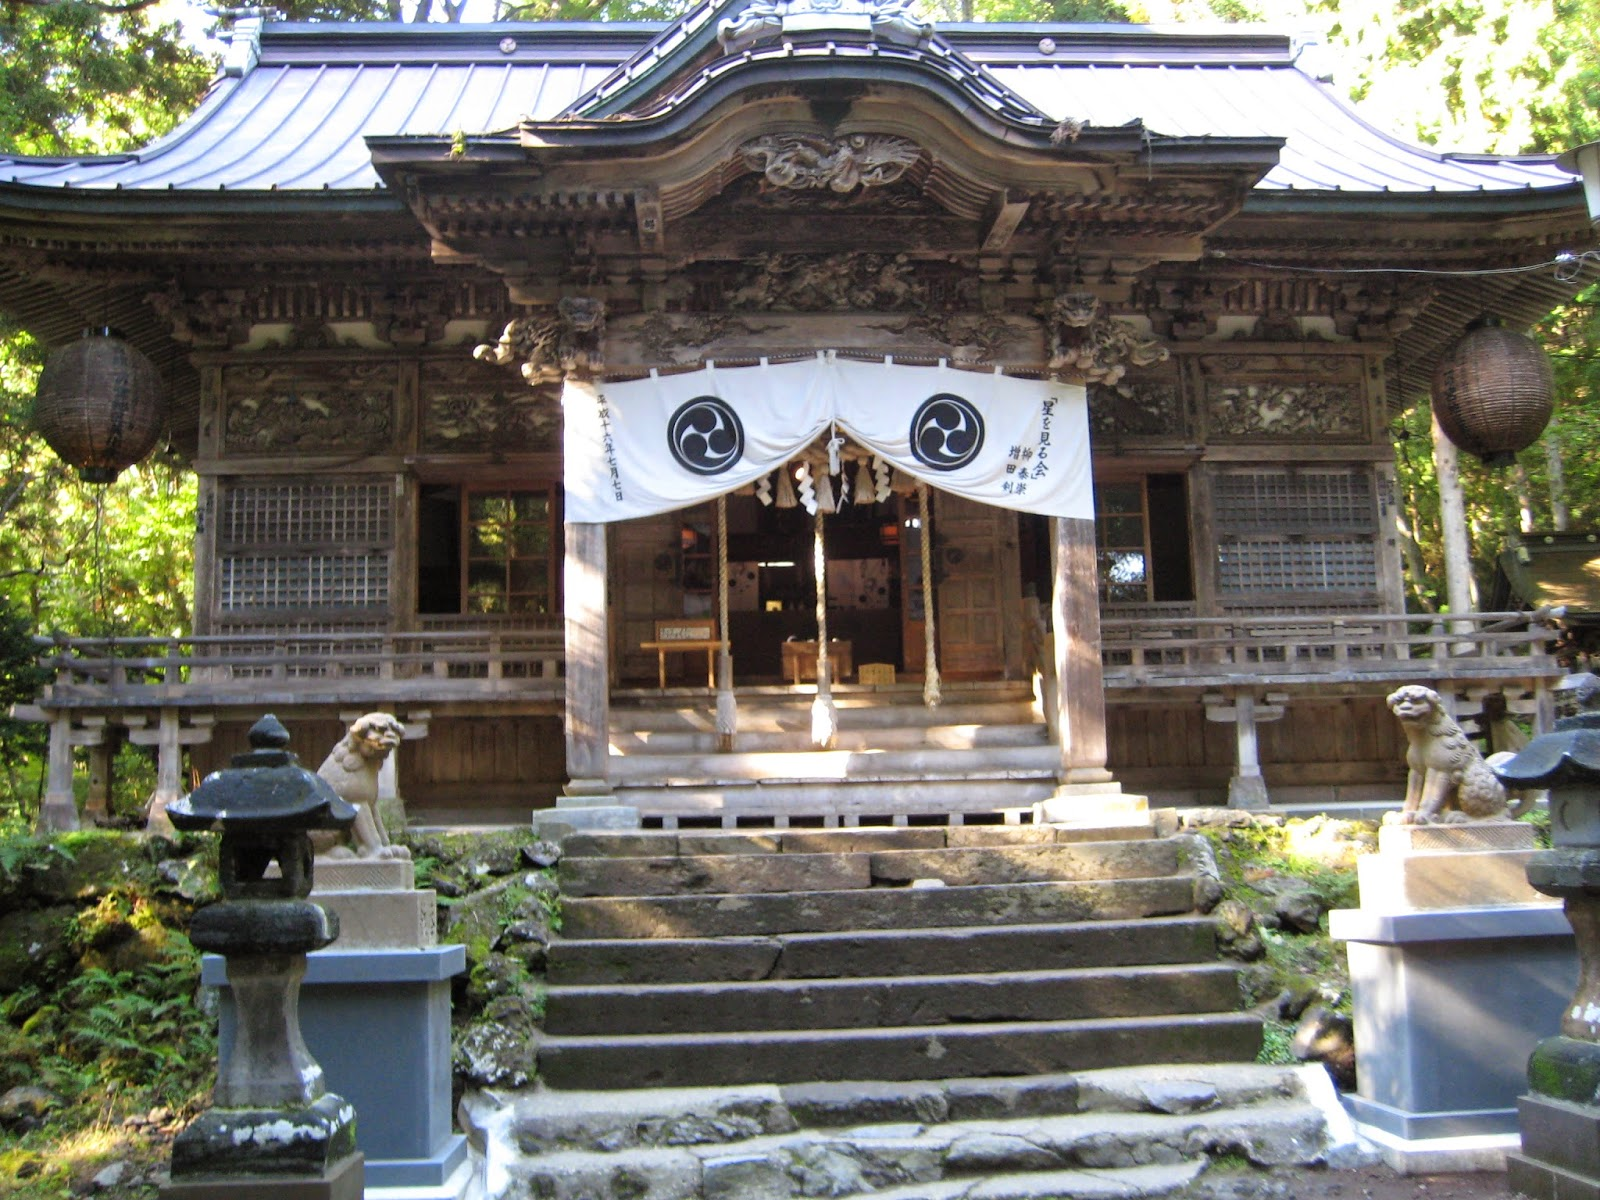 Towada Jinja (Shrine) Lake Towada Towadako 十和田湖 十和田神社